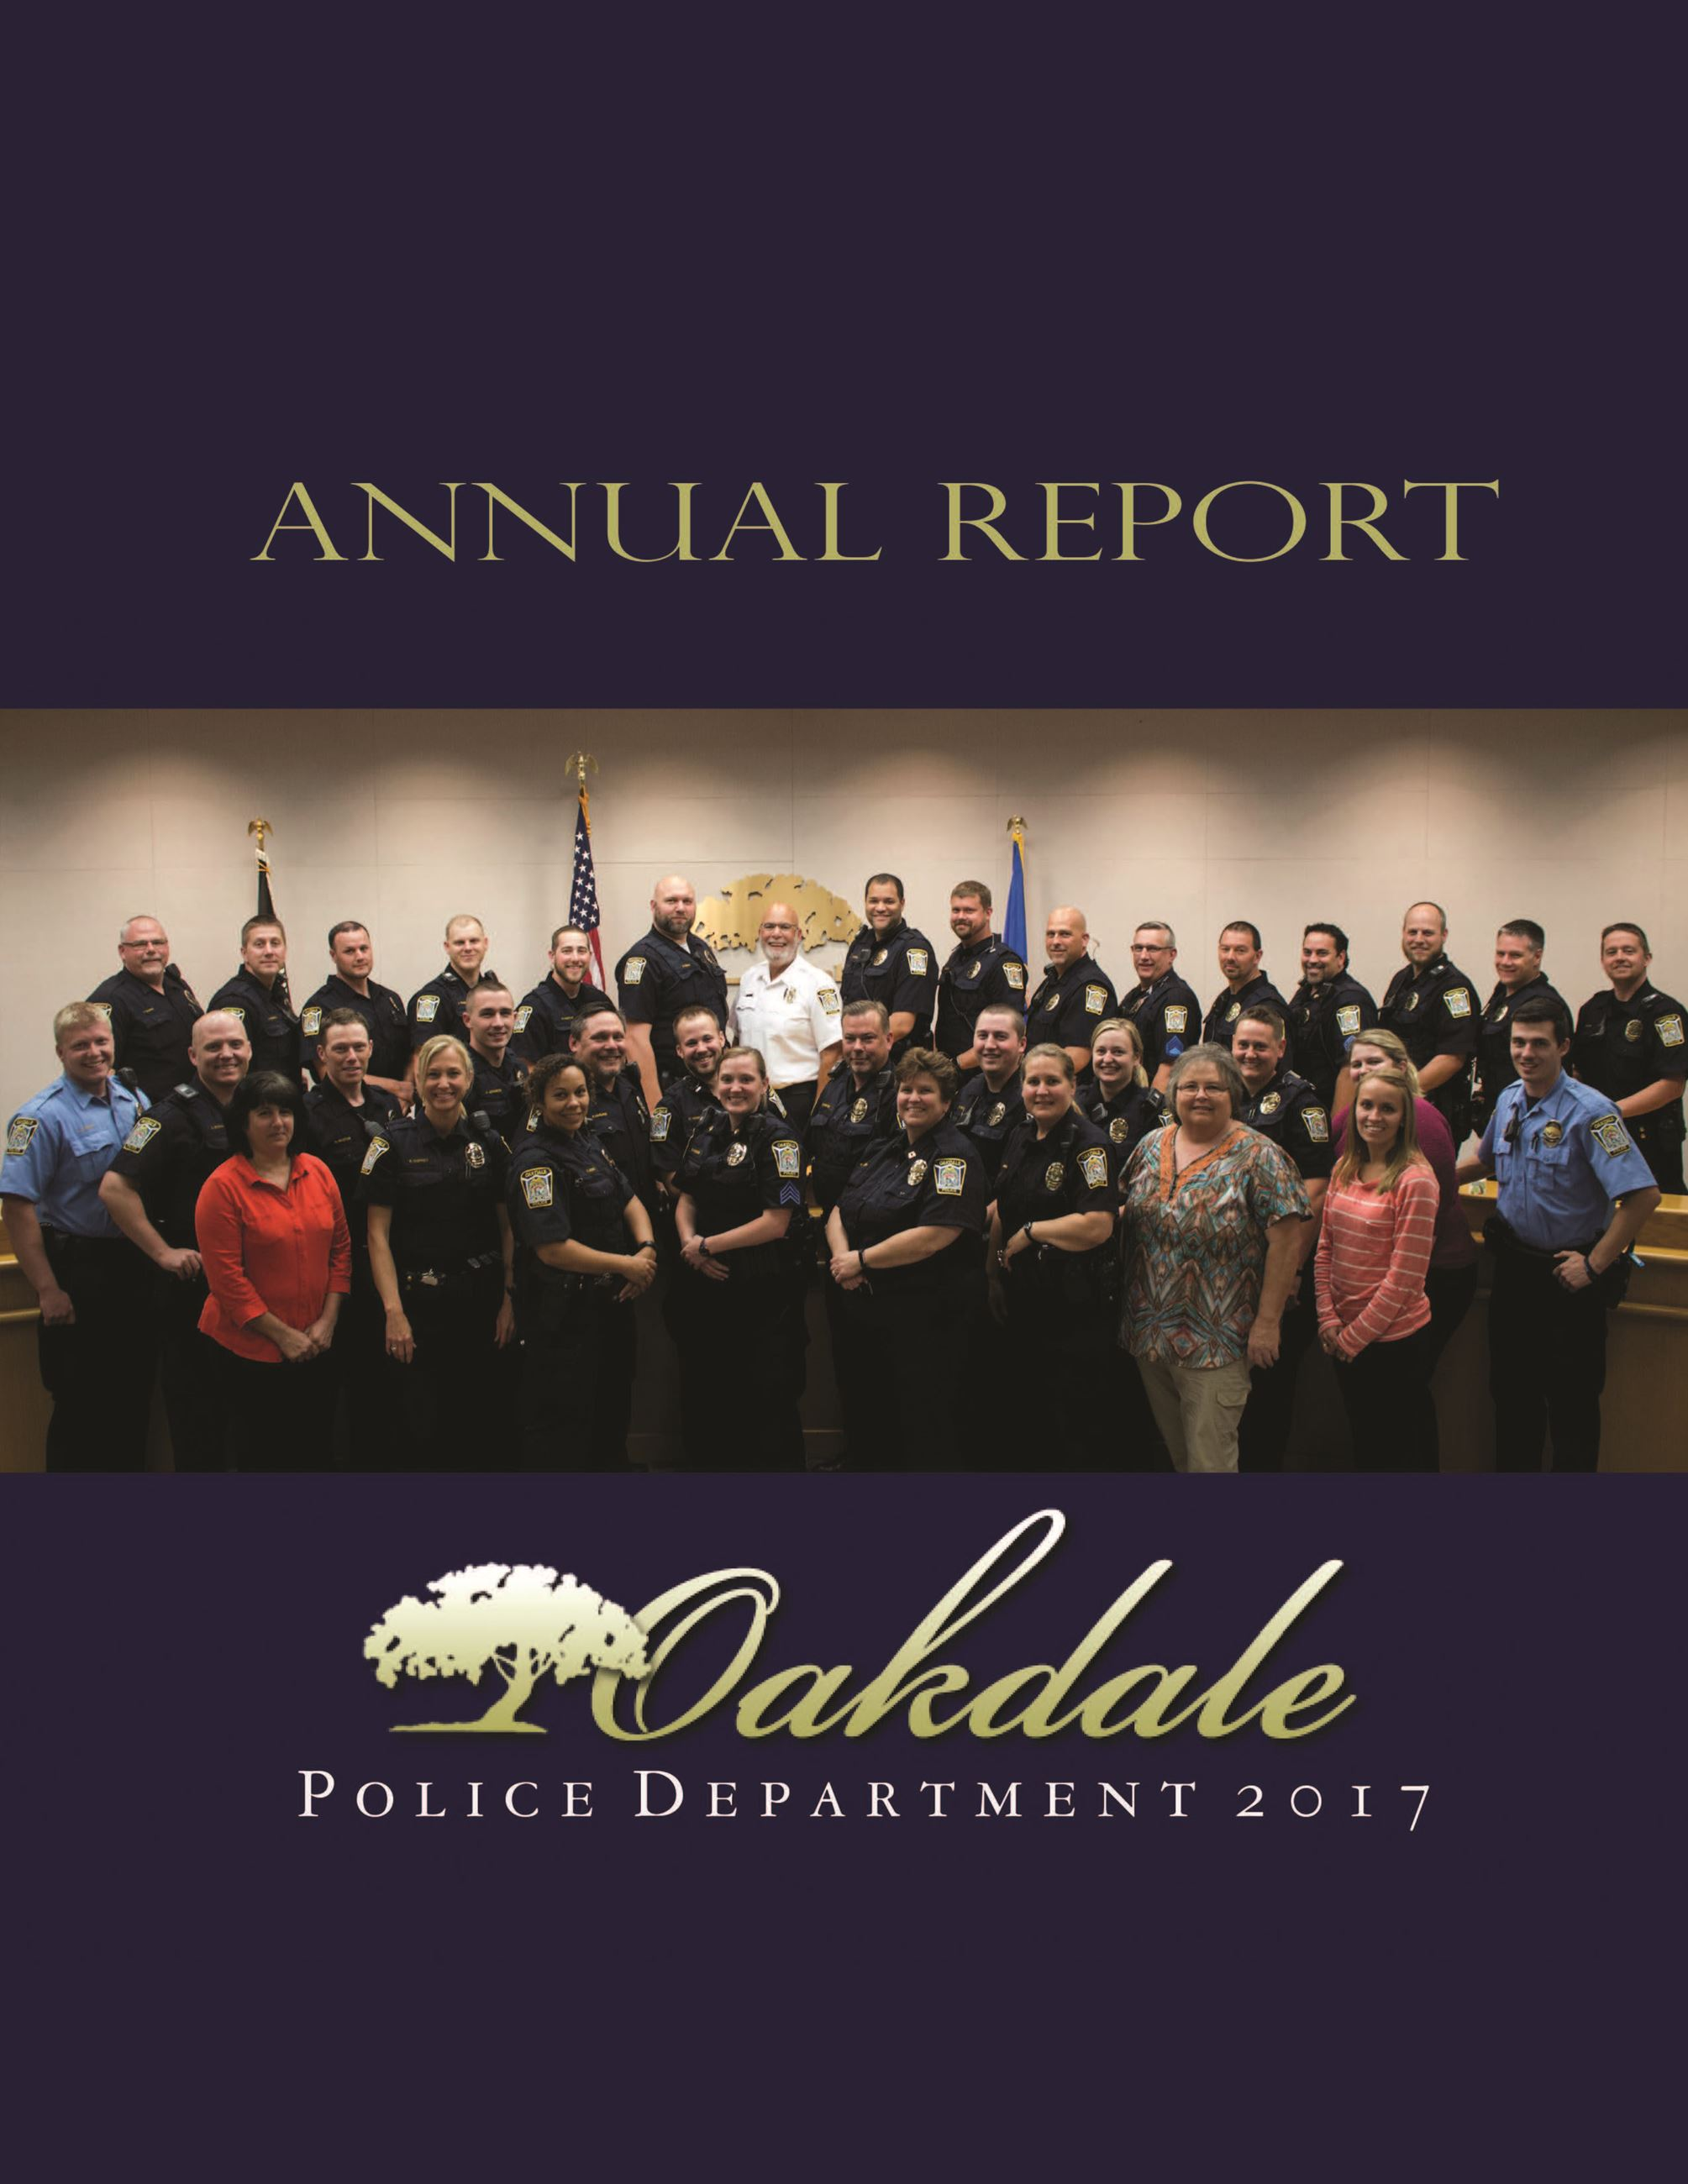 Cover of 2017 Annual Police Report with group photo of all police staff